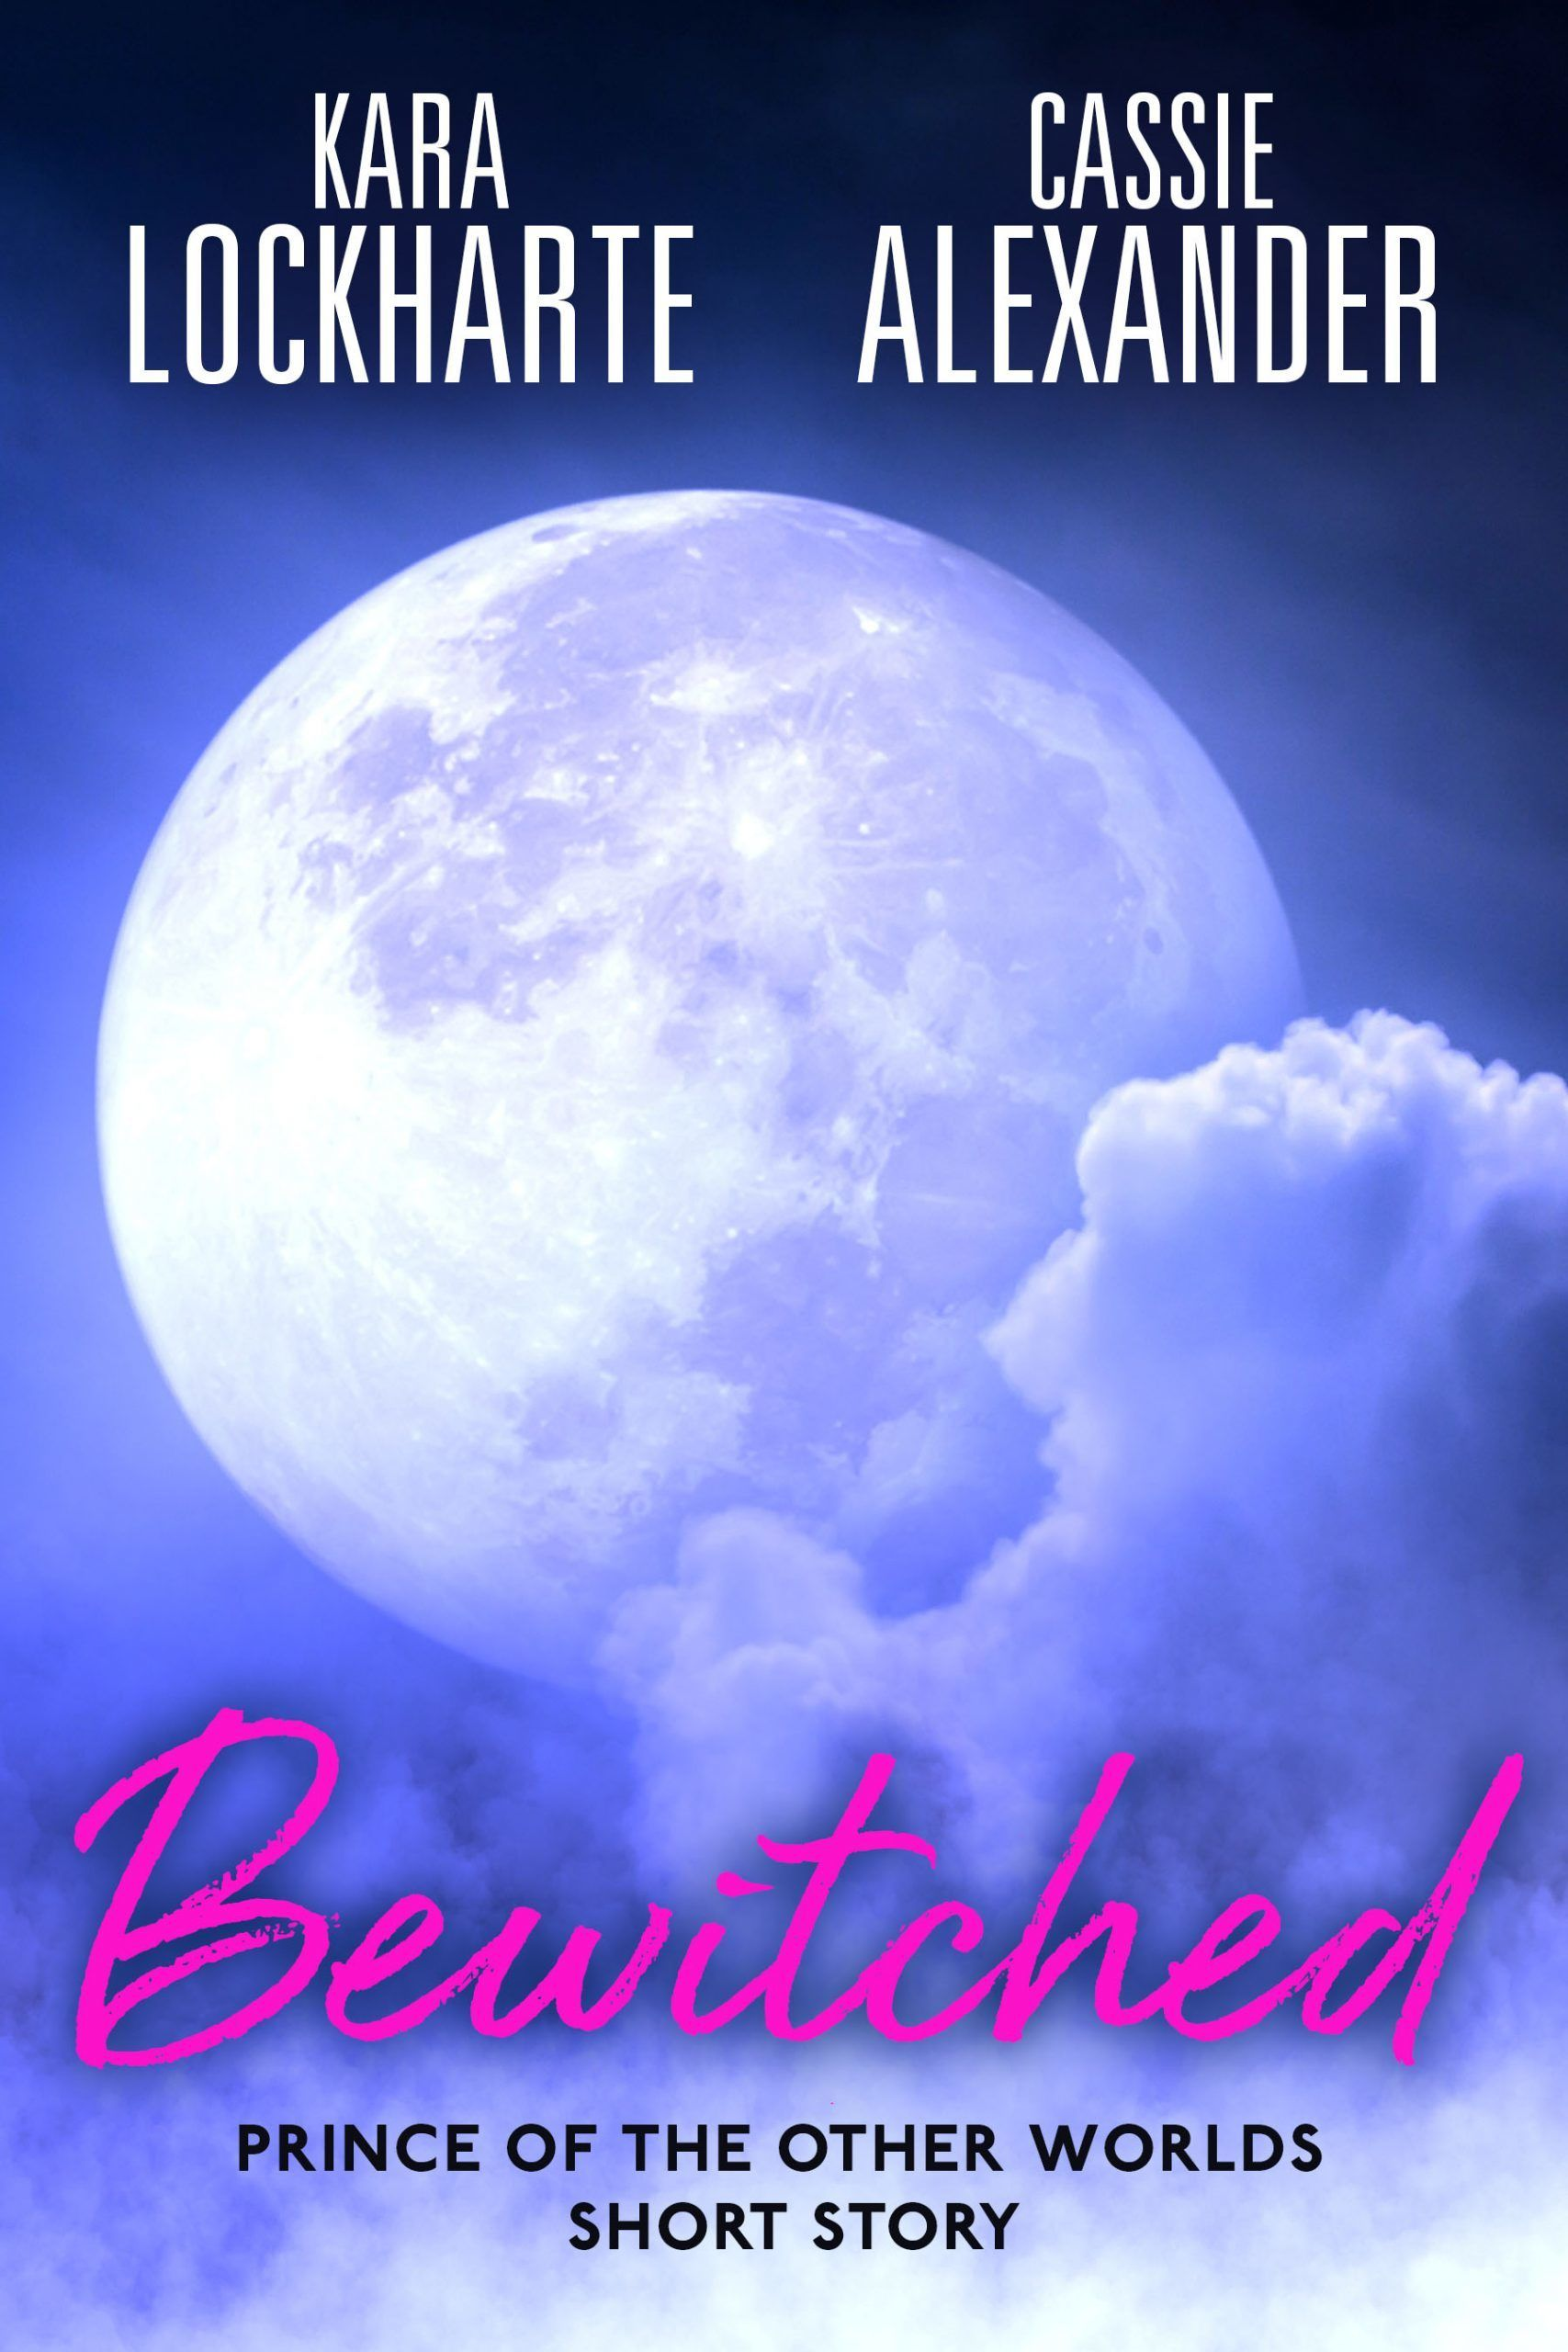 Bewitched - A Prince of the Otherworlds Short story